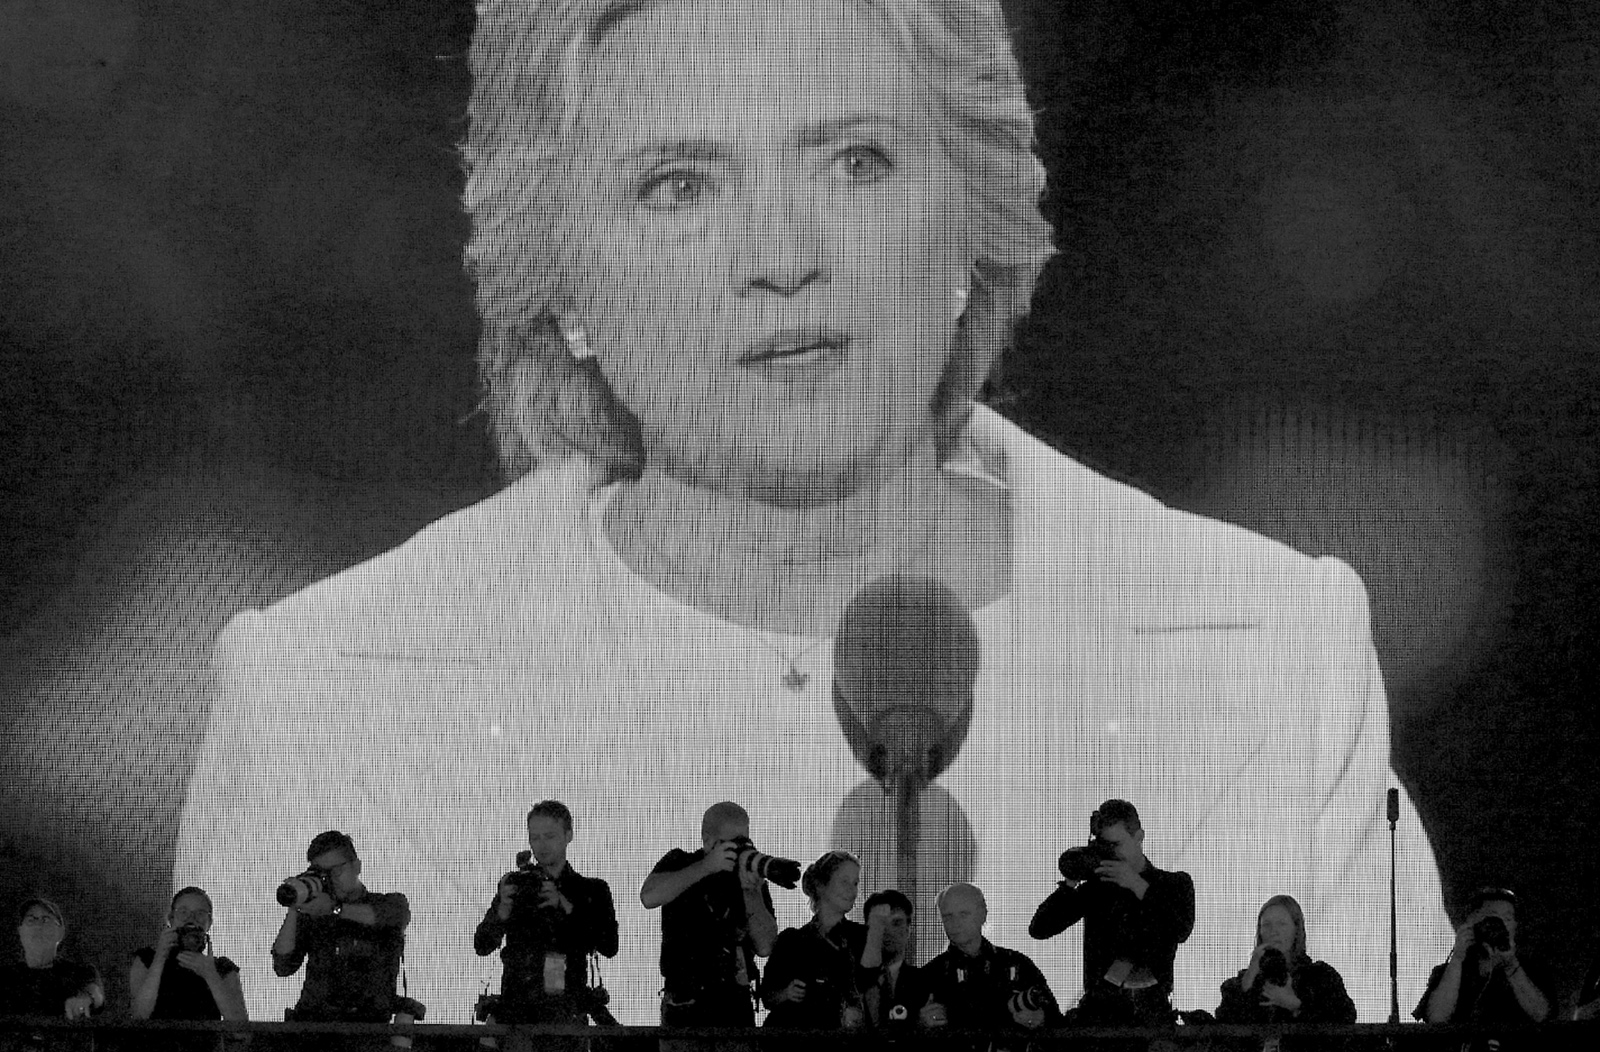 Photographers covering Hillary Clinton's acceptance speech on the last night of the Democratic National Convention, Philadelphia, July 2016